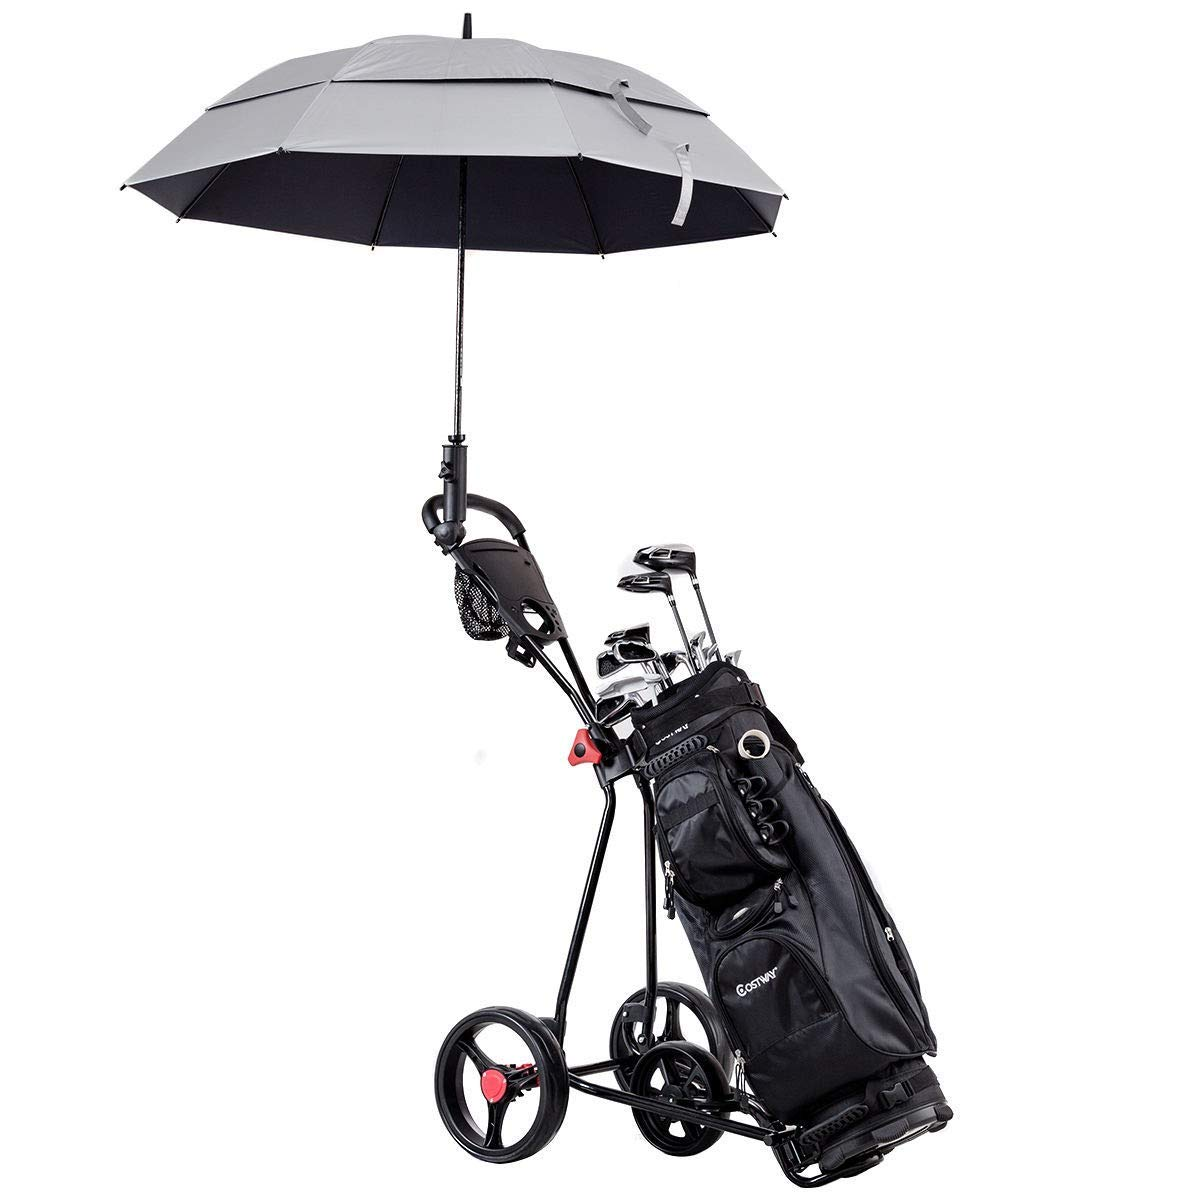 MD Group Golf Cart 3 Wheeled Durable Foldable Steel Lightweight Utility Sports Equipment with Mesh Bag